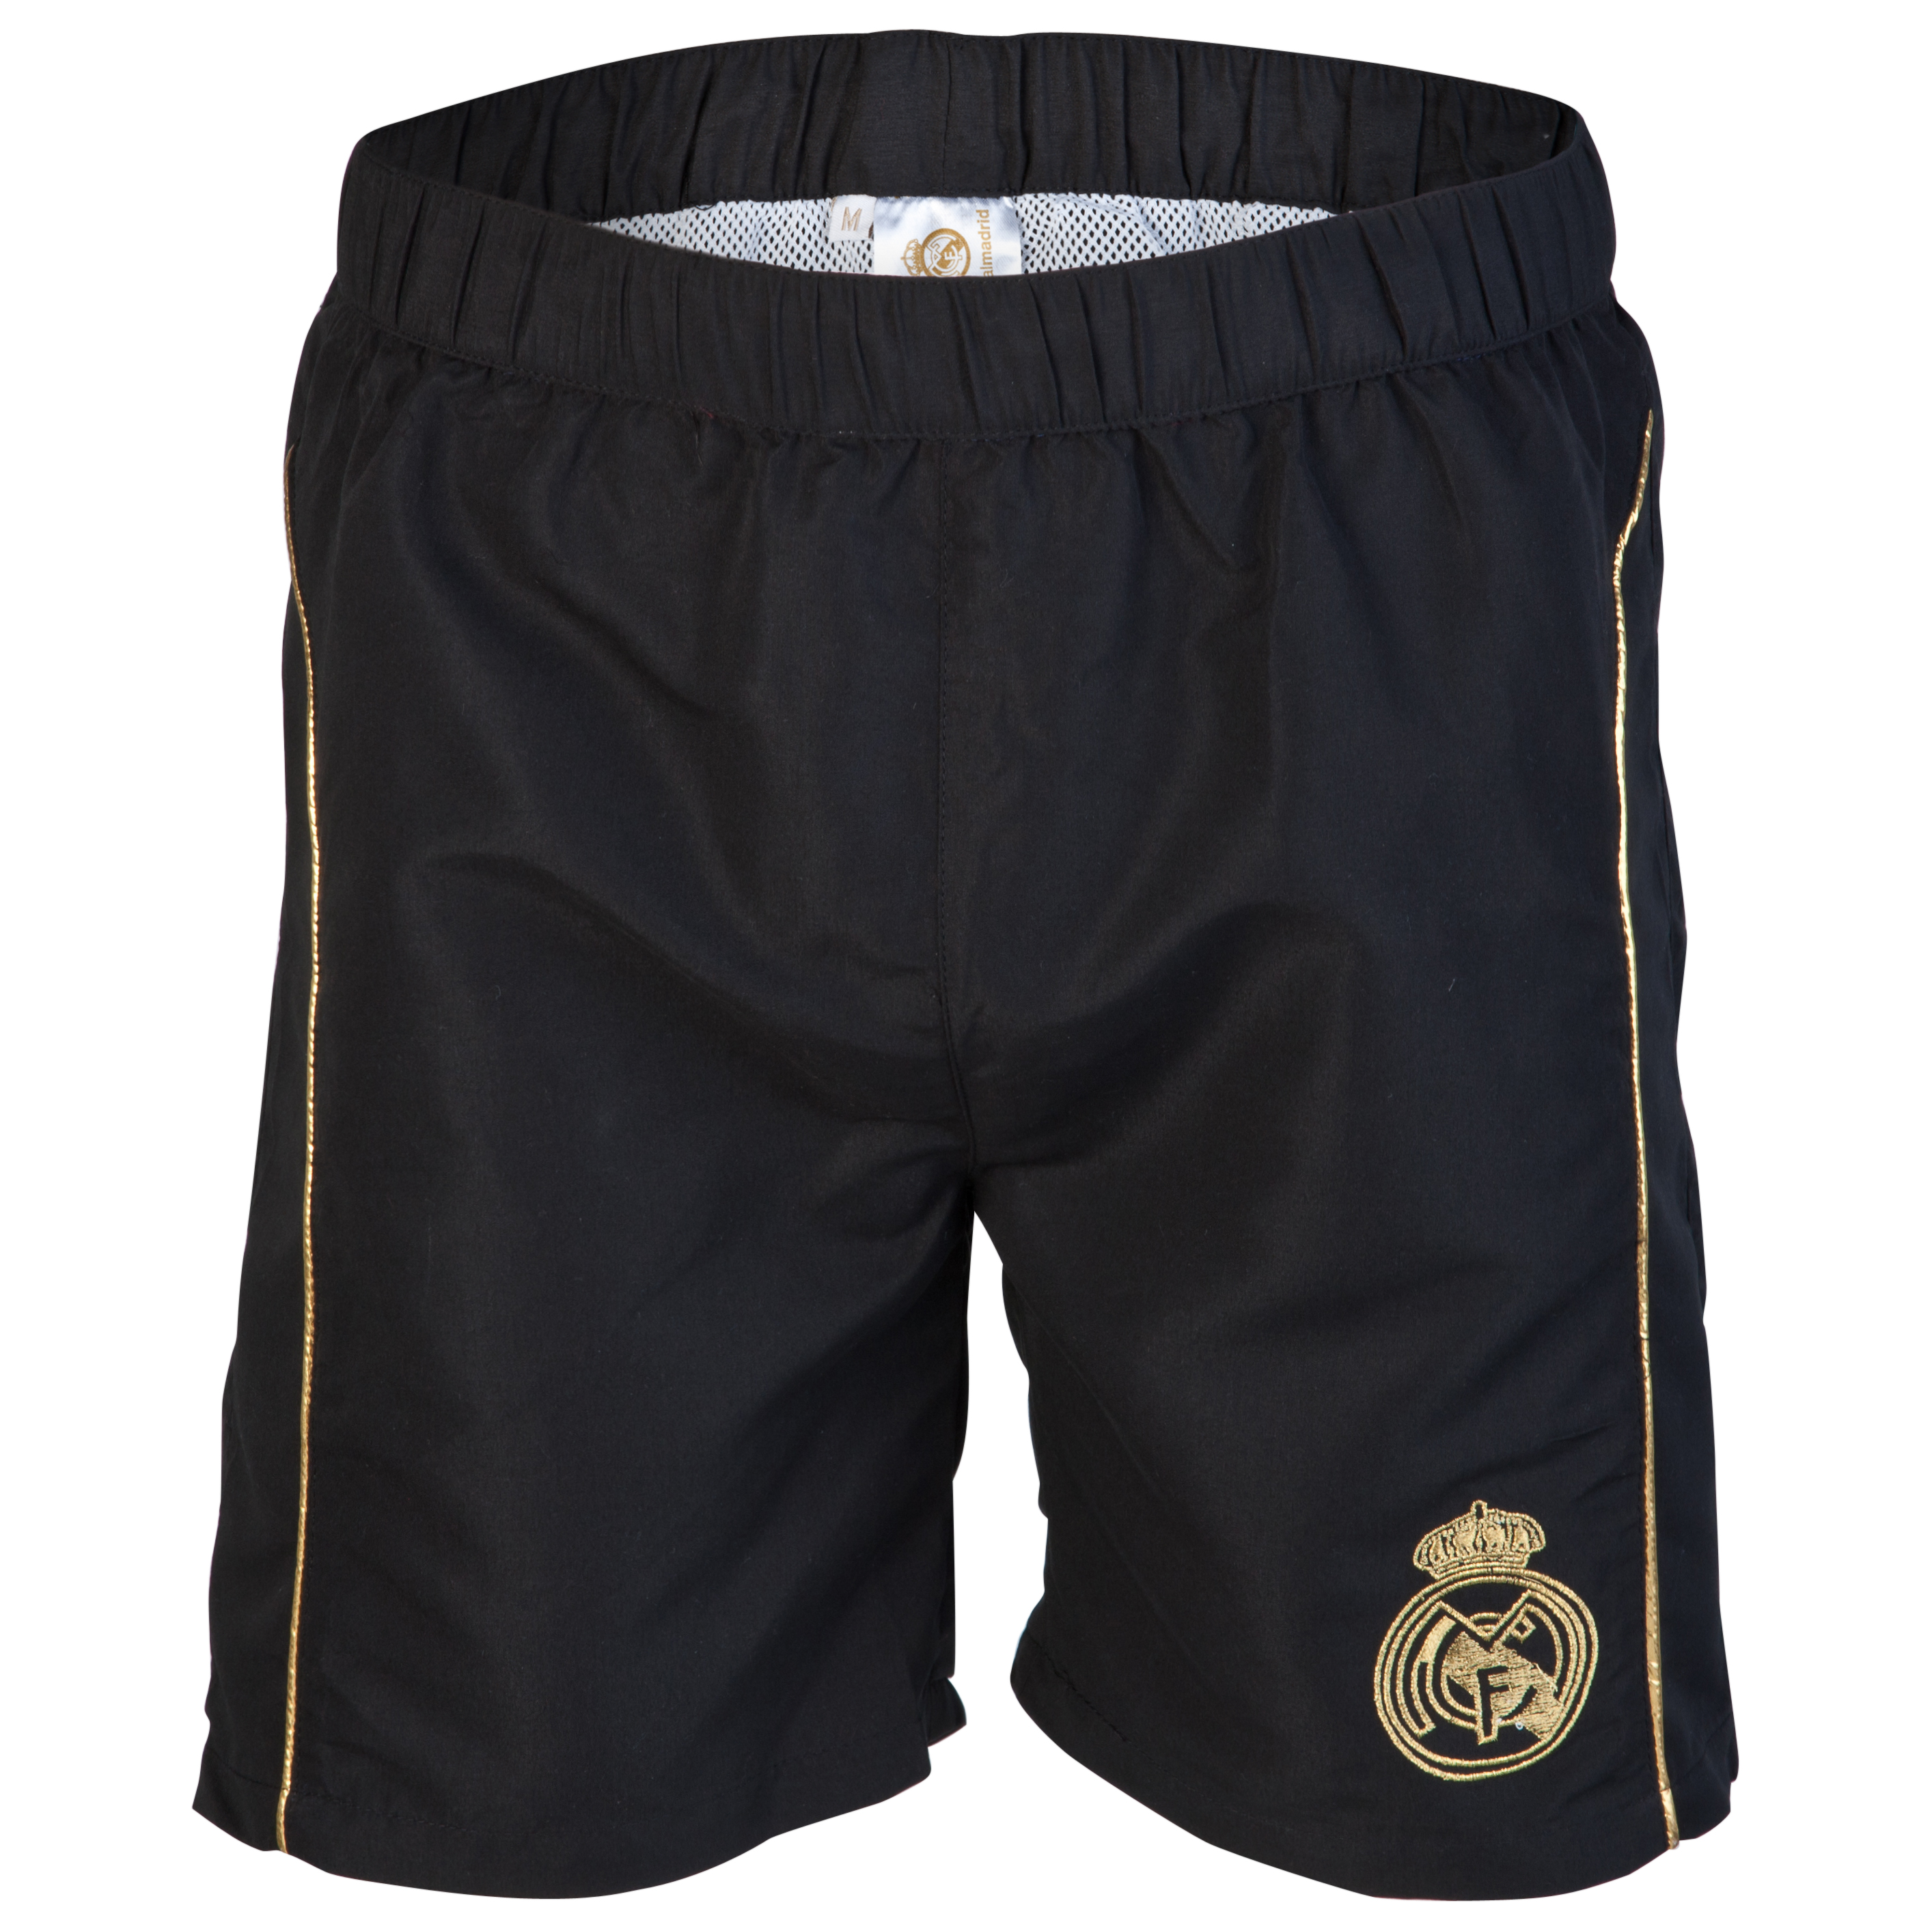 Real Madrid Crest Shorts - Black